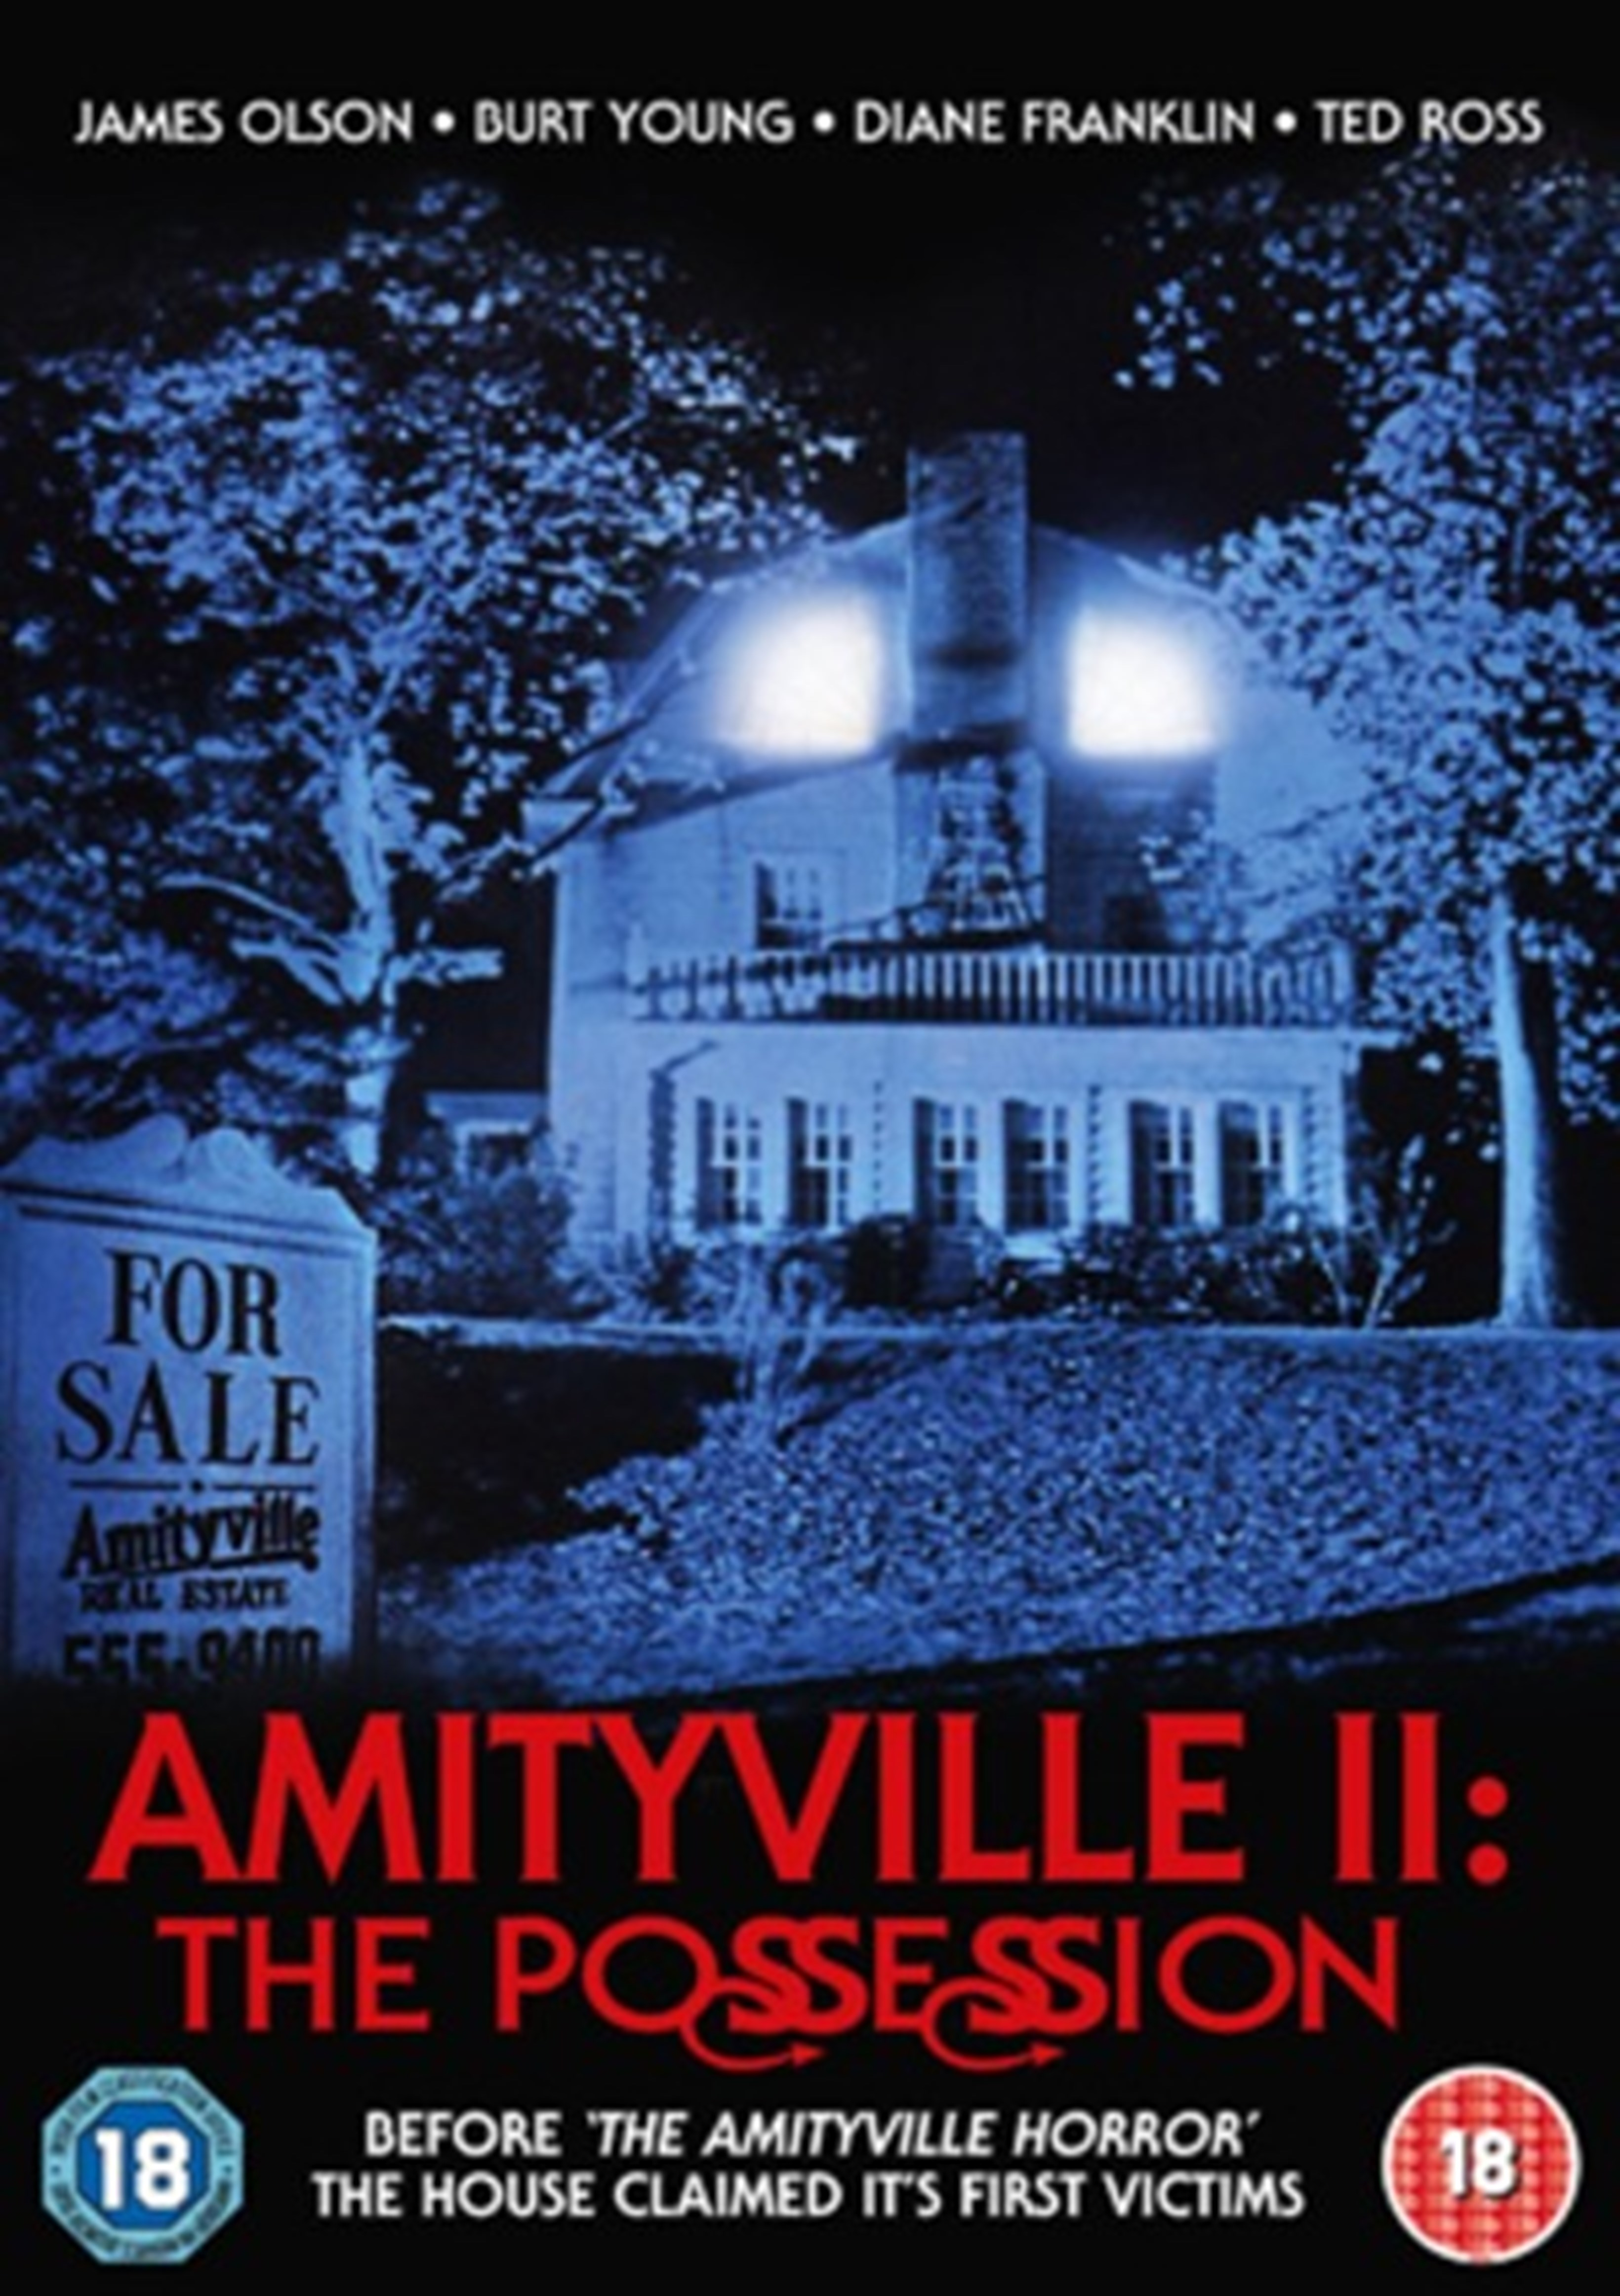 Amityville 2 - The Possession - 1